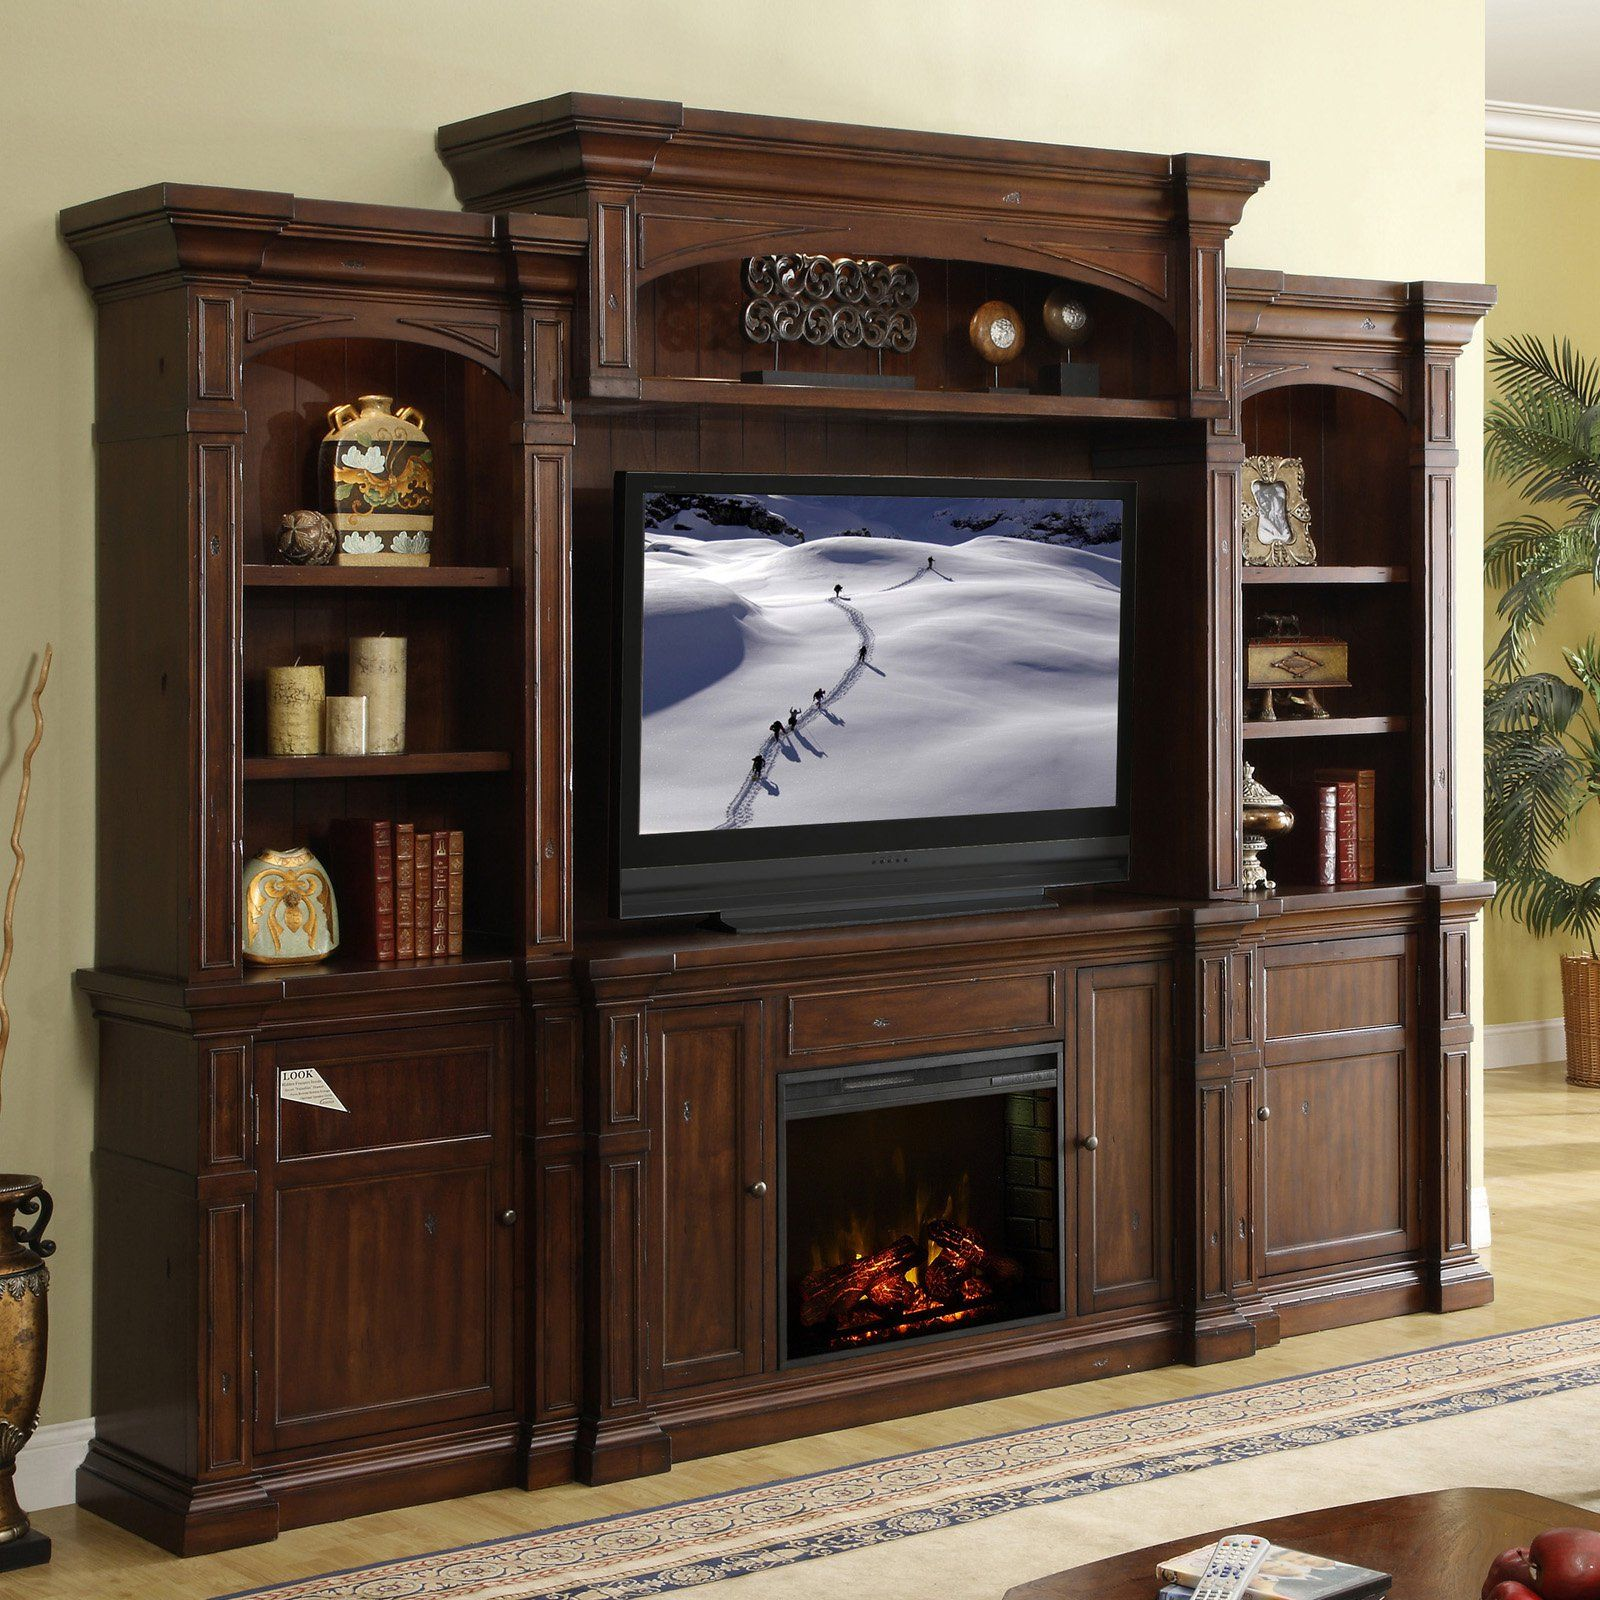 Cheap legends furniture cambridge fireplace media center in cherry - Legends Berkshire Entertainment Center Old World Umber From Hayneedle Com Legends Furnitureentertainment Wallfireplace